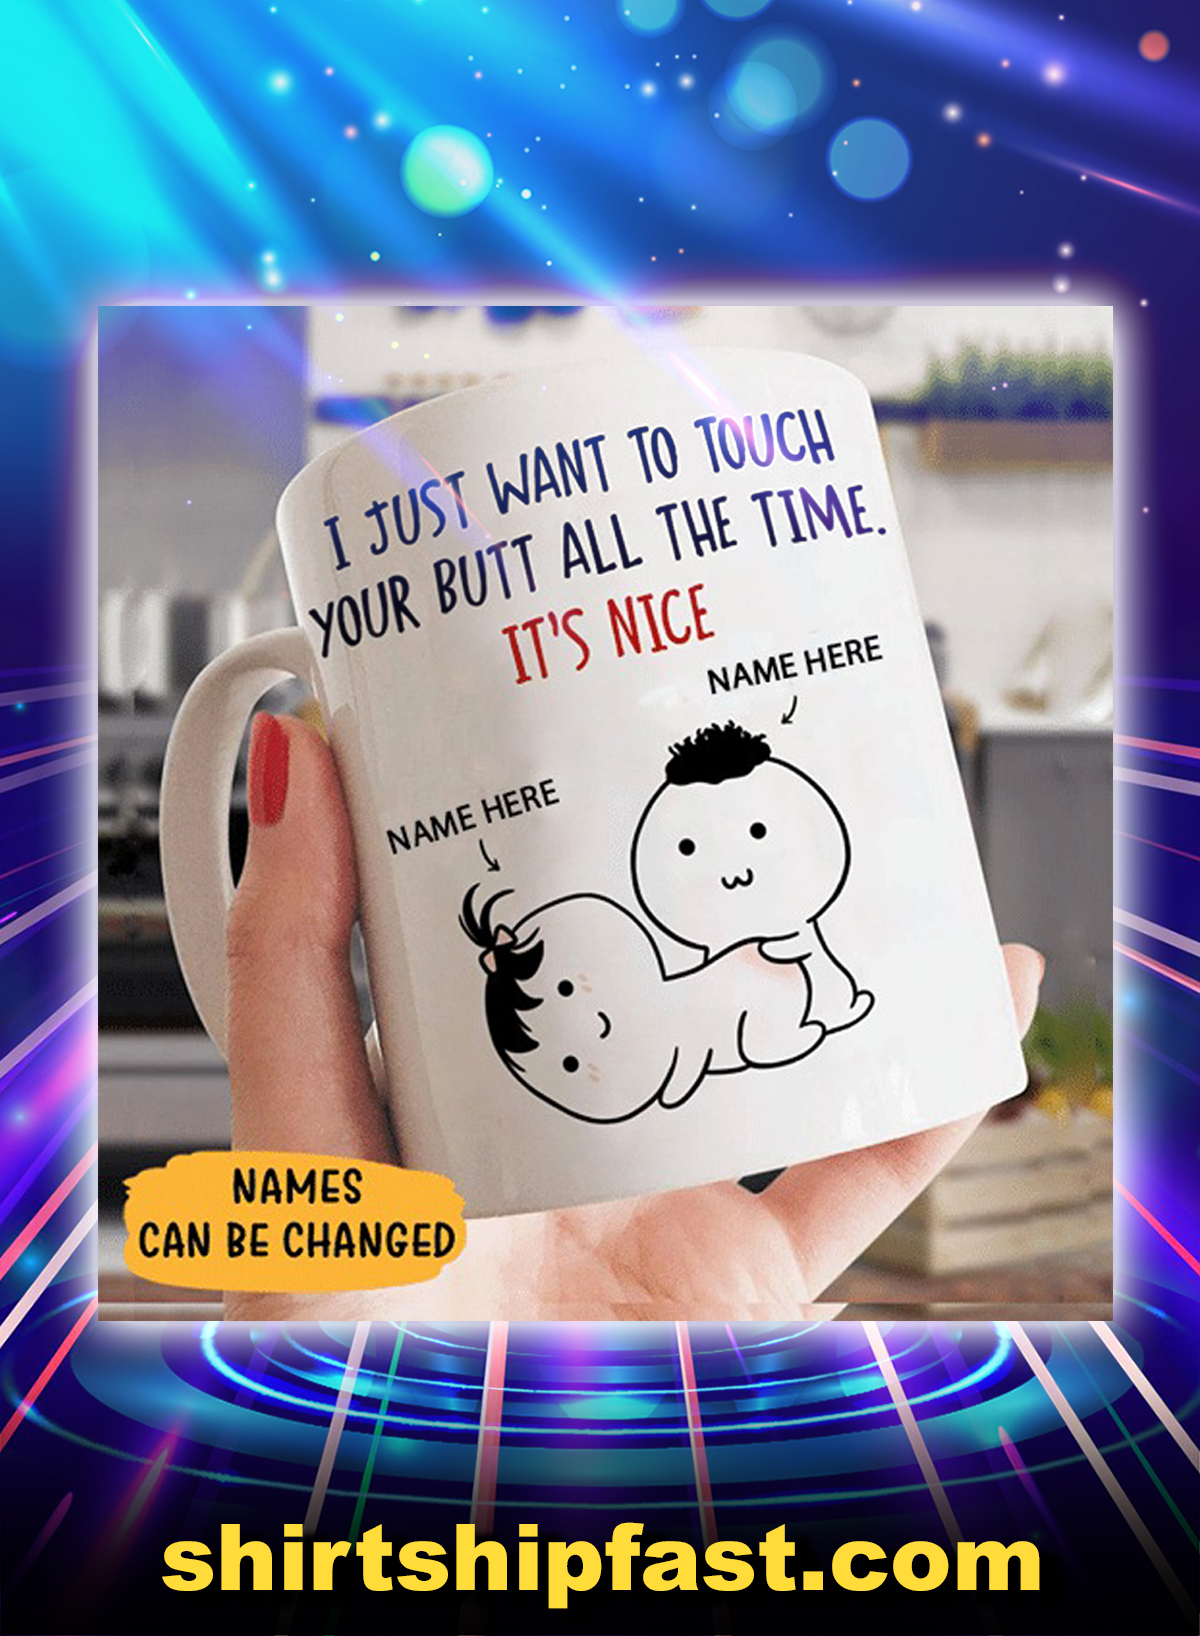 Customize I just want to touch your butt all the time It's nice mug